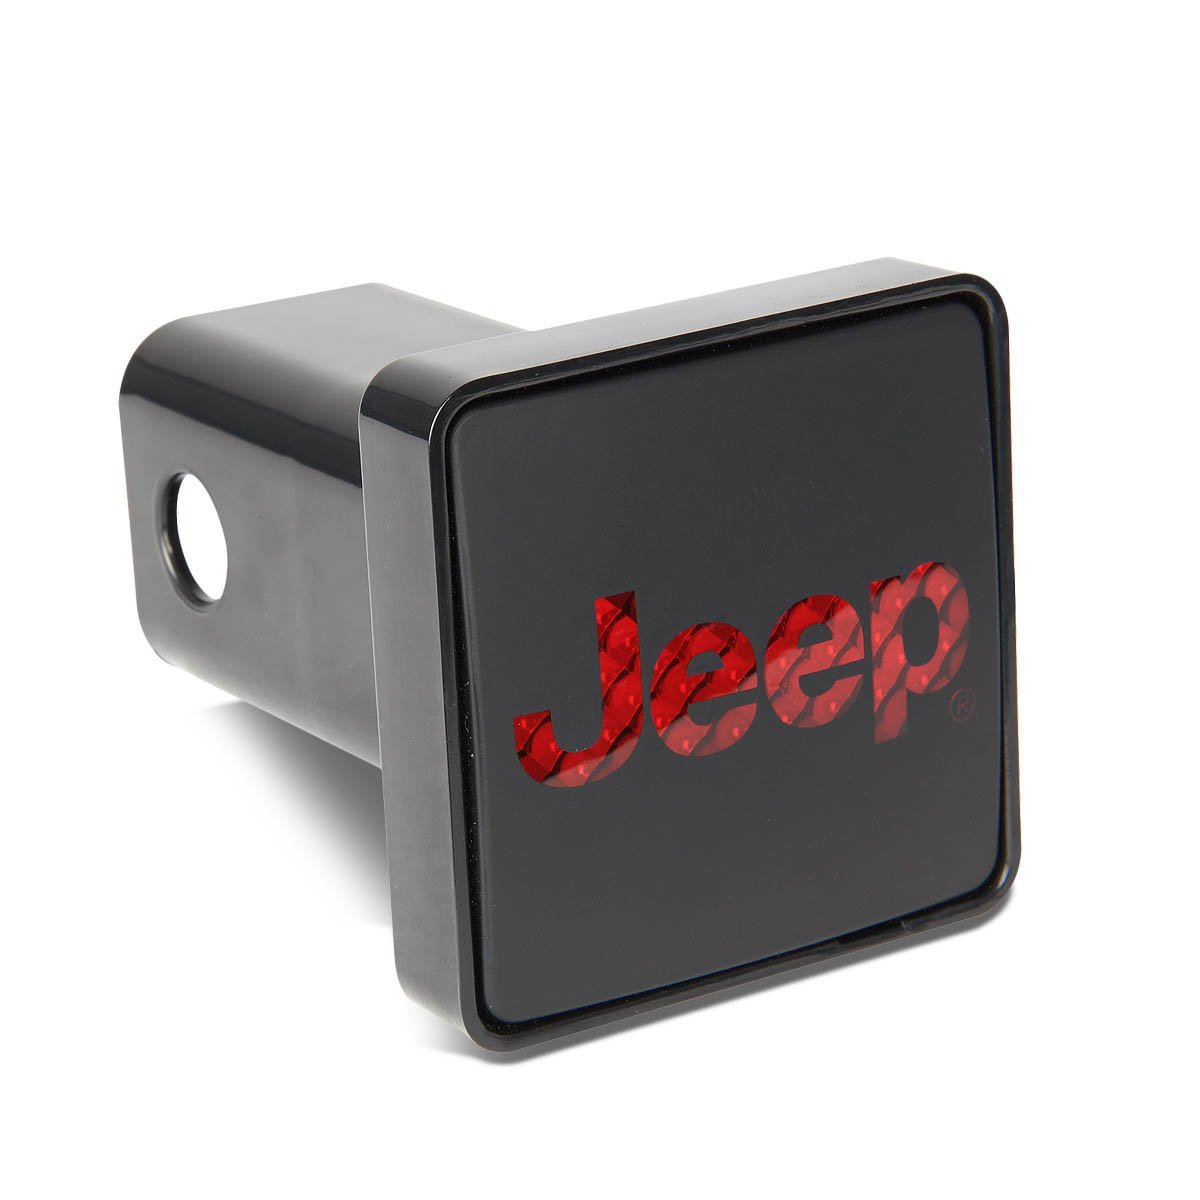 Bully CR-007J Jeep Tow Hitch Cover/Receiver Trailer Plug in Black with LED Brake Light Jeep Logo Emblem - Jeep (JK, YJ, TJ) Wrangler Accessories - Genuine License Products by Bully